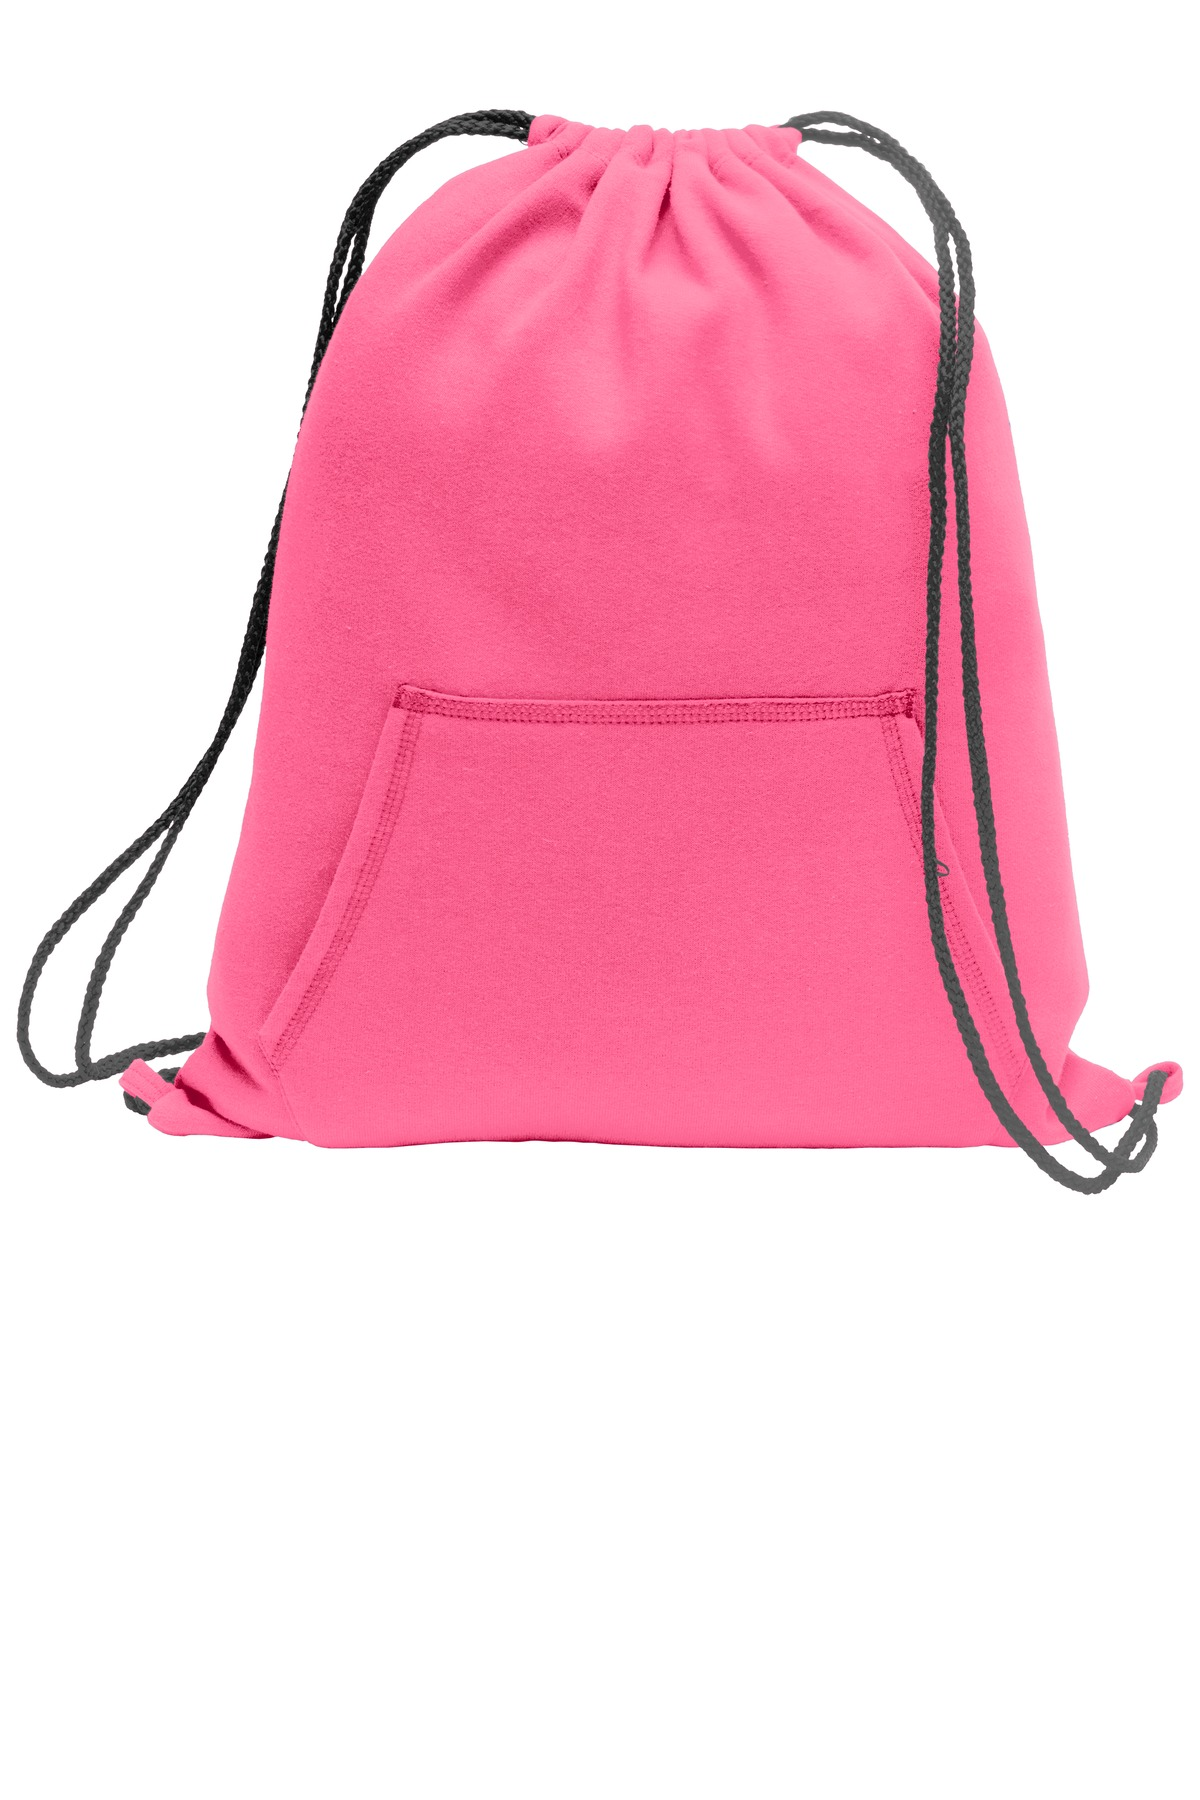 Port & Company ®  Core Fleece Sweatshirt Cinch Pack. BG614 - Neon Pink